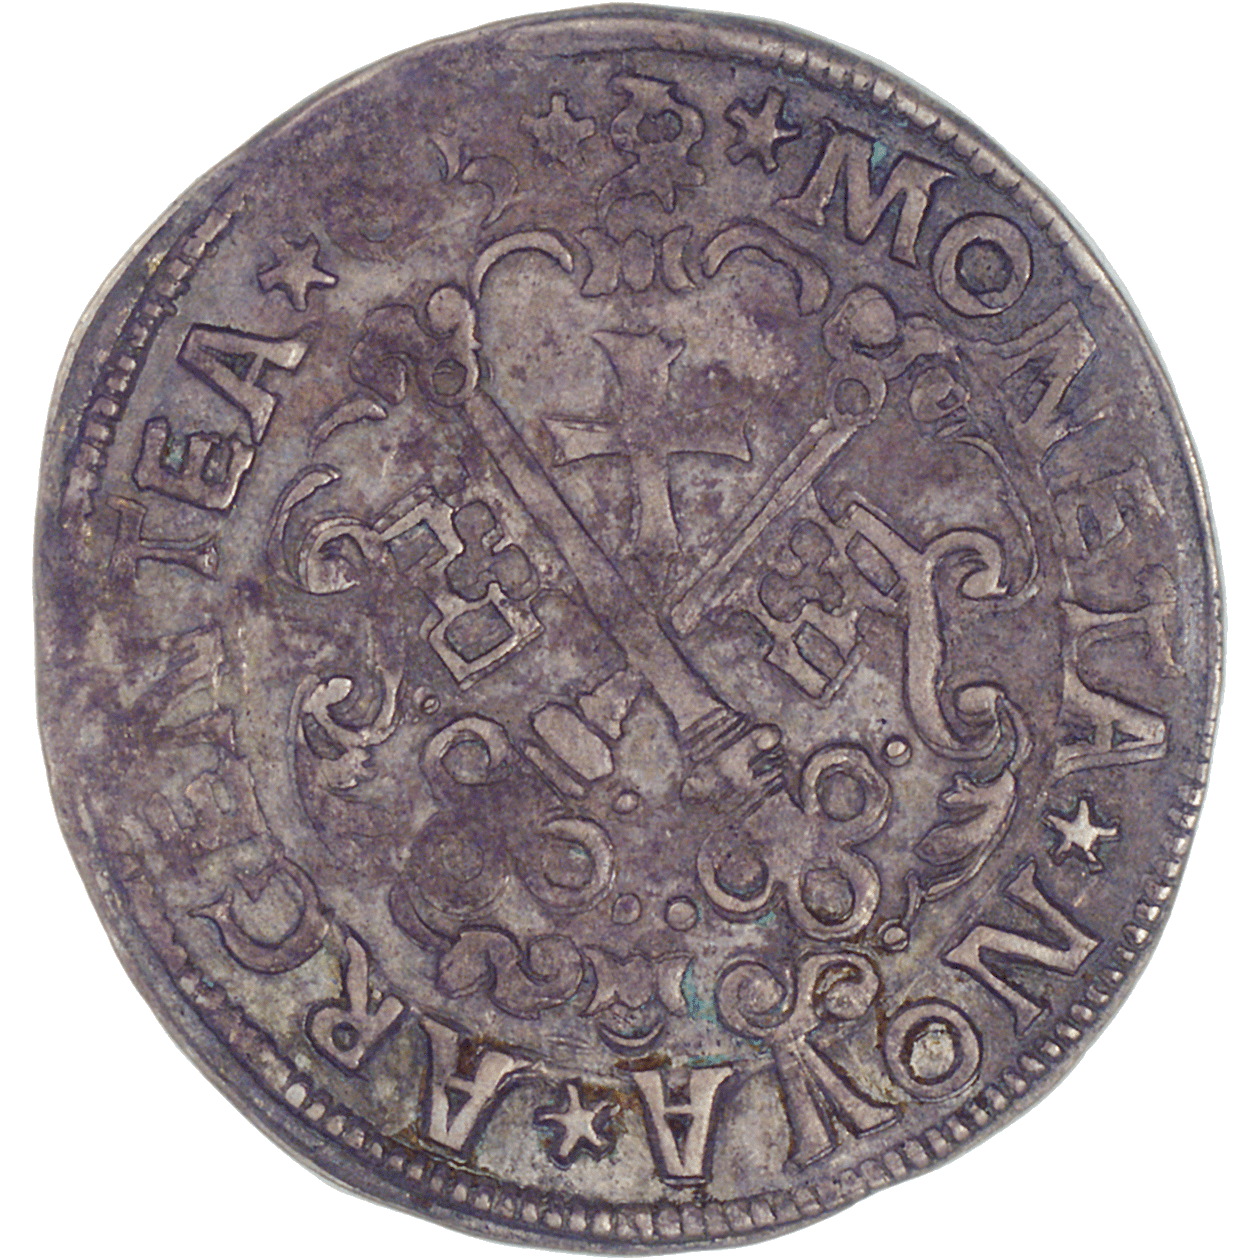 Free and Hanseatic City of Riga, 1/2 Mark (reverse)